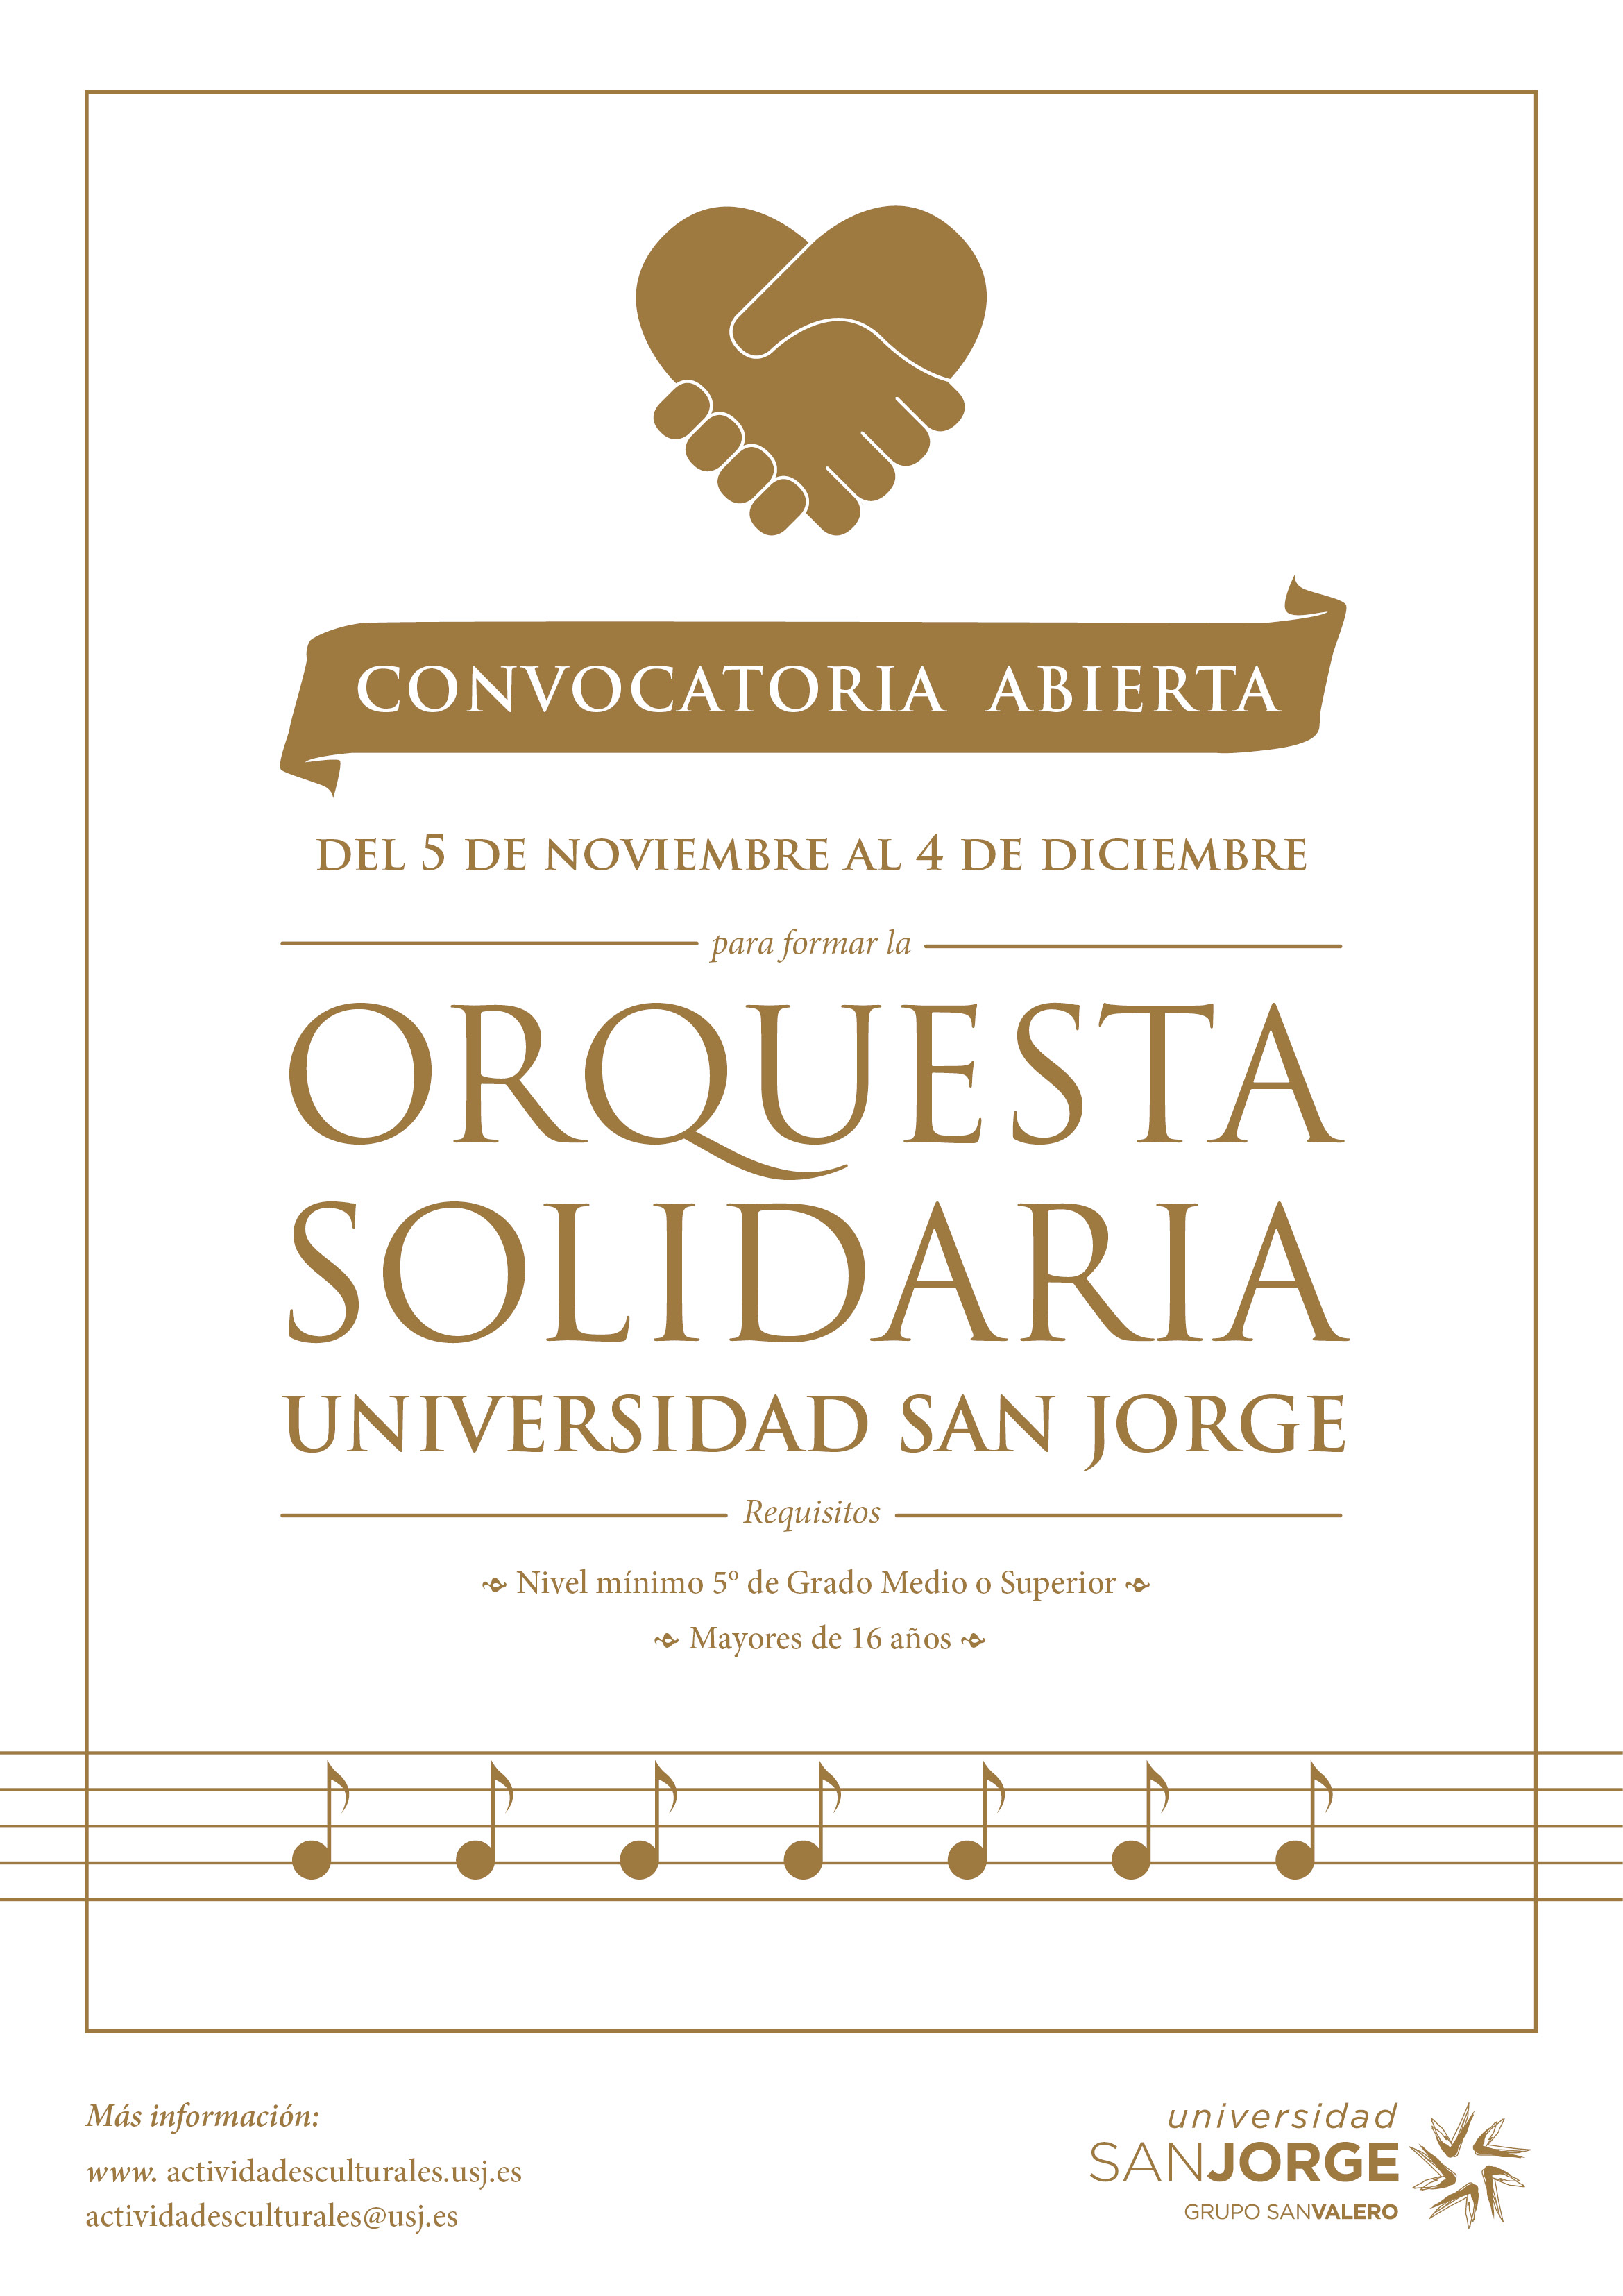 Orquesta Solidaria USJ Convocatoria 2015